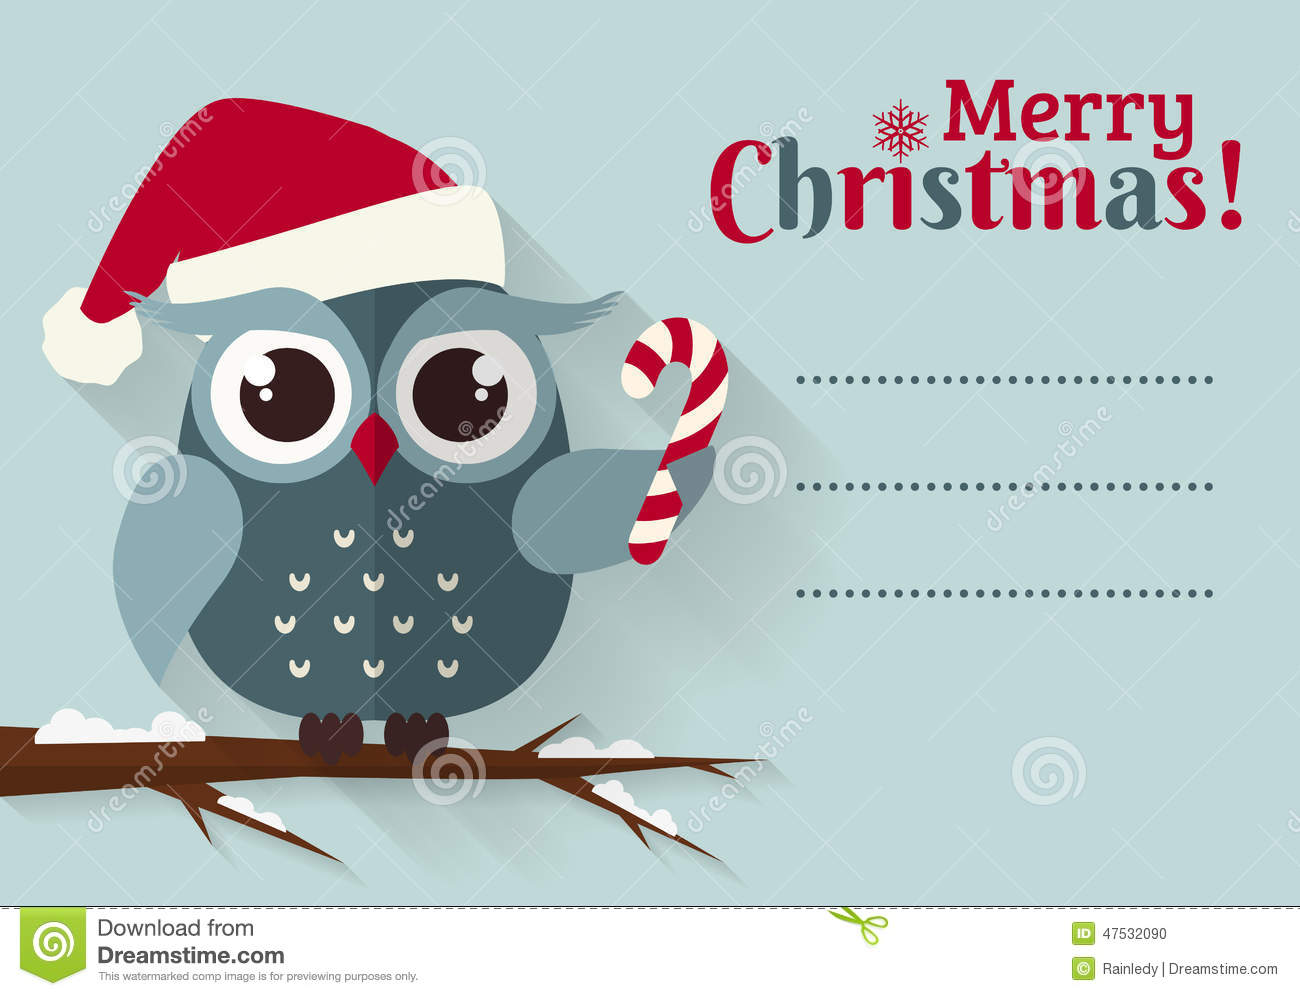 Merry Christmas! Card With Cute Owl And A Place For Text. Stock Vector - Image: 47532090